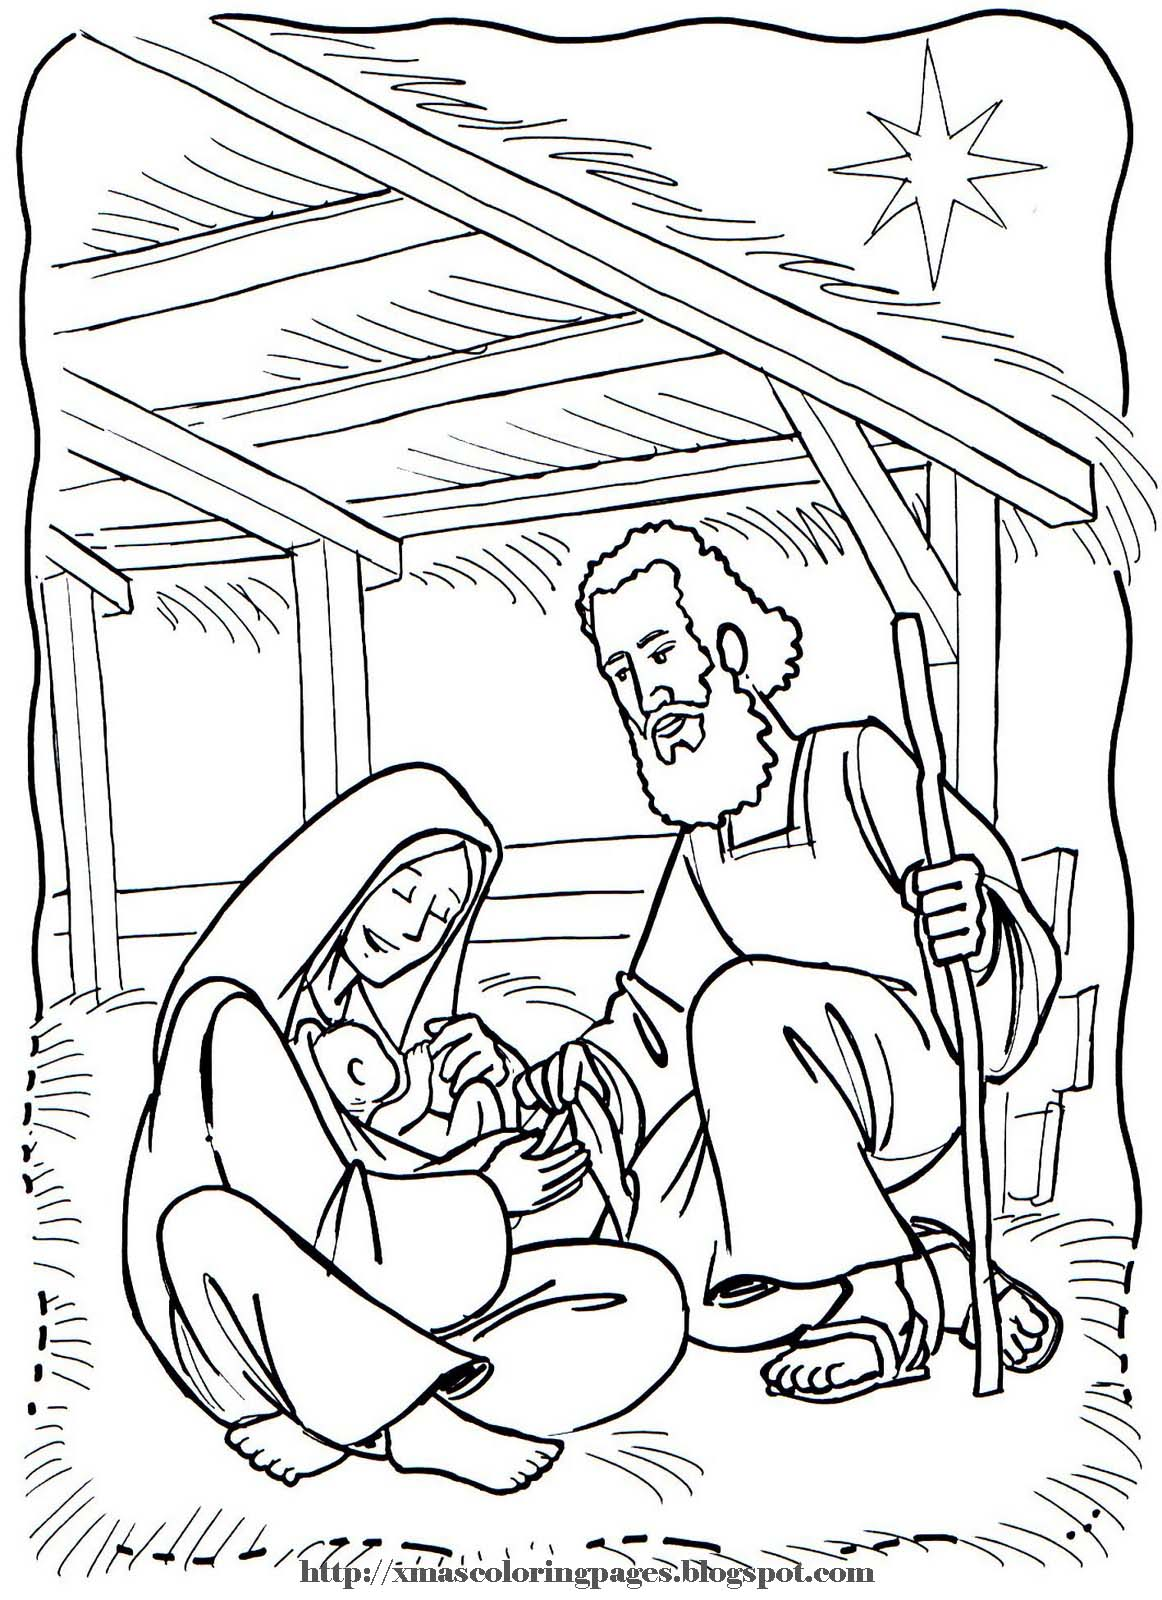 Xmas Coloring Pages Manger Coloring Pages